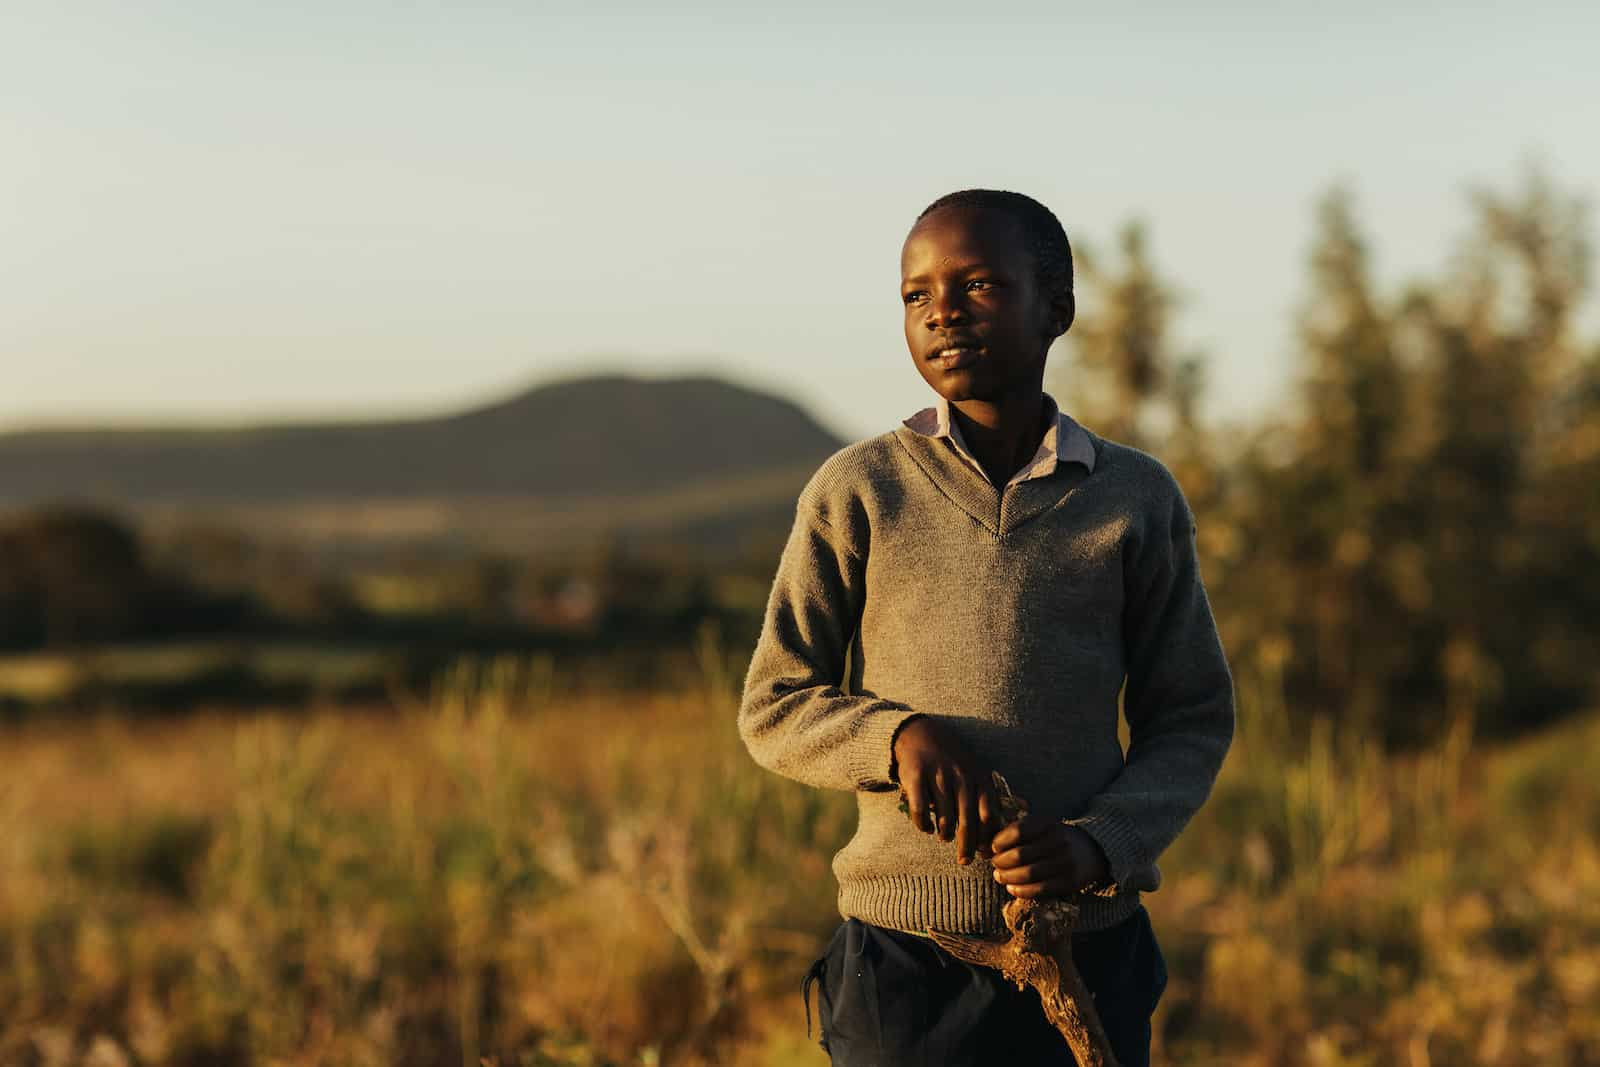 A boy wearing a grey sweater holding a wooden stick stands in the sunset in a field, looking into the distance.